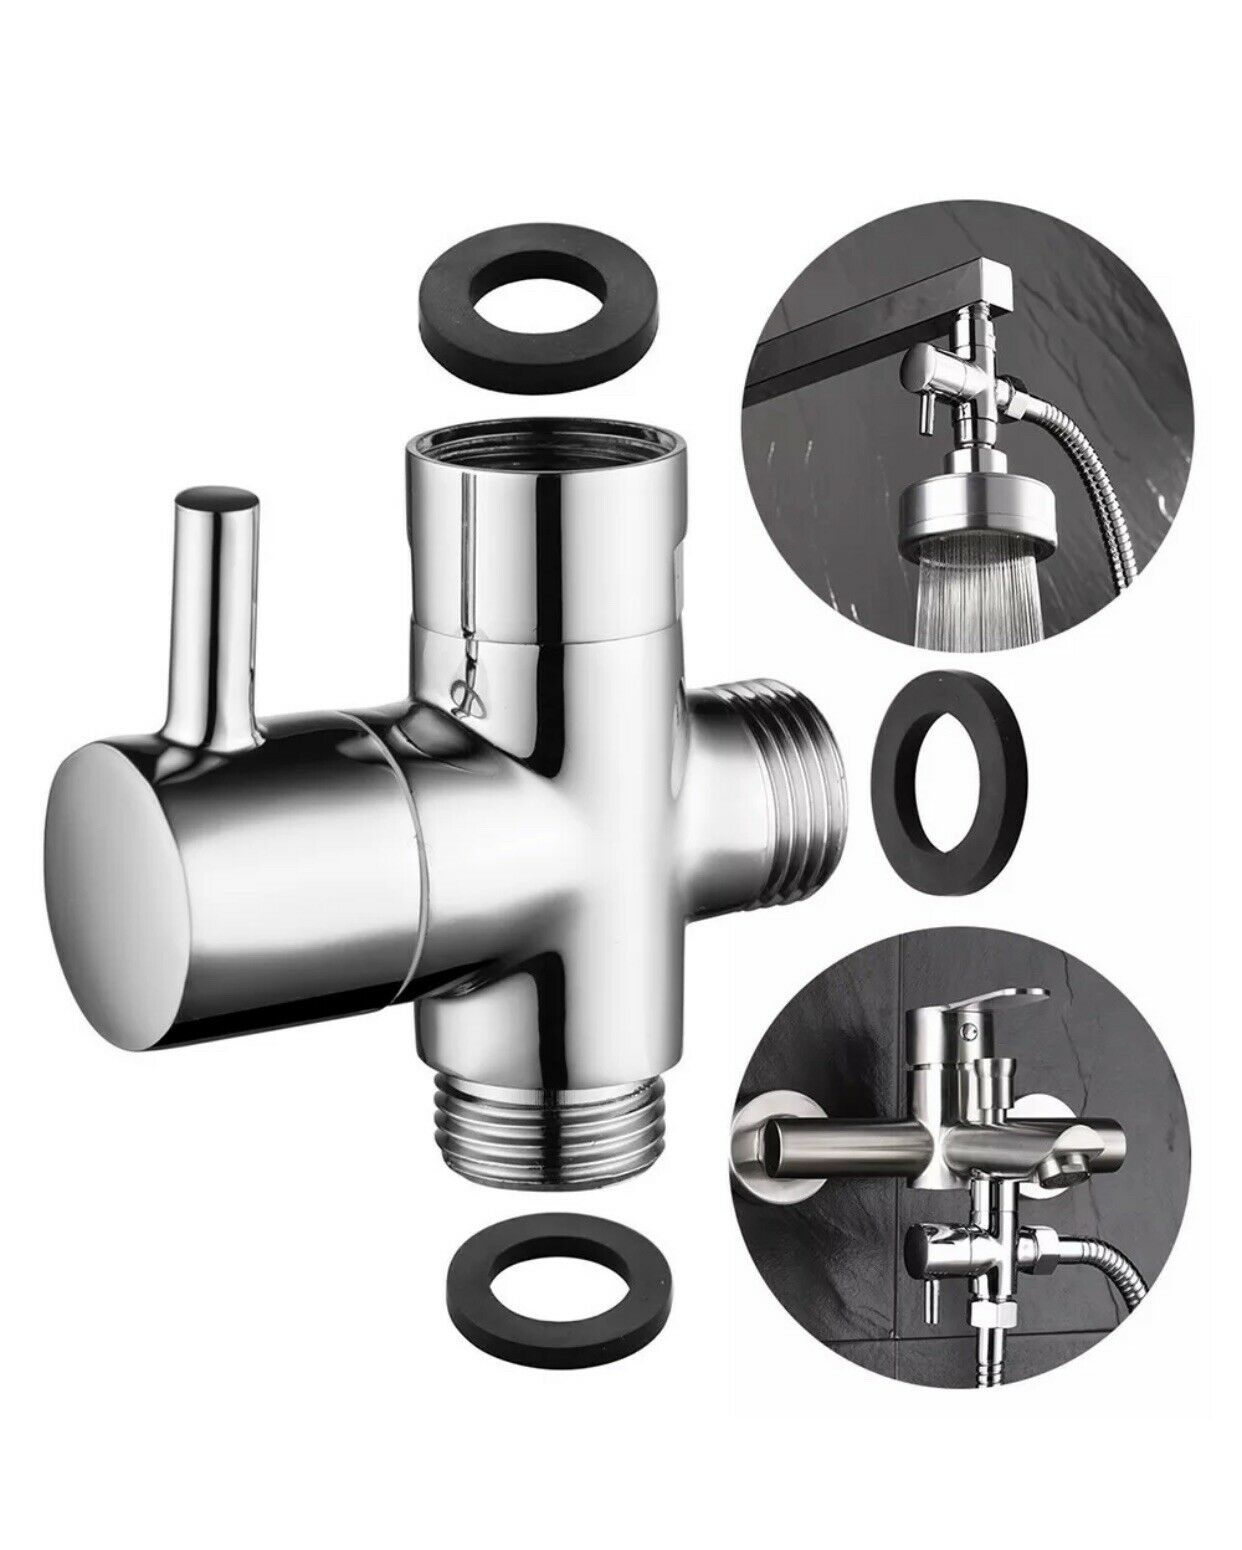 Wall Mount Brass Bathroom Shower Faucet Valve 2 Ways Water Outlet Diverter Valve